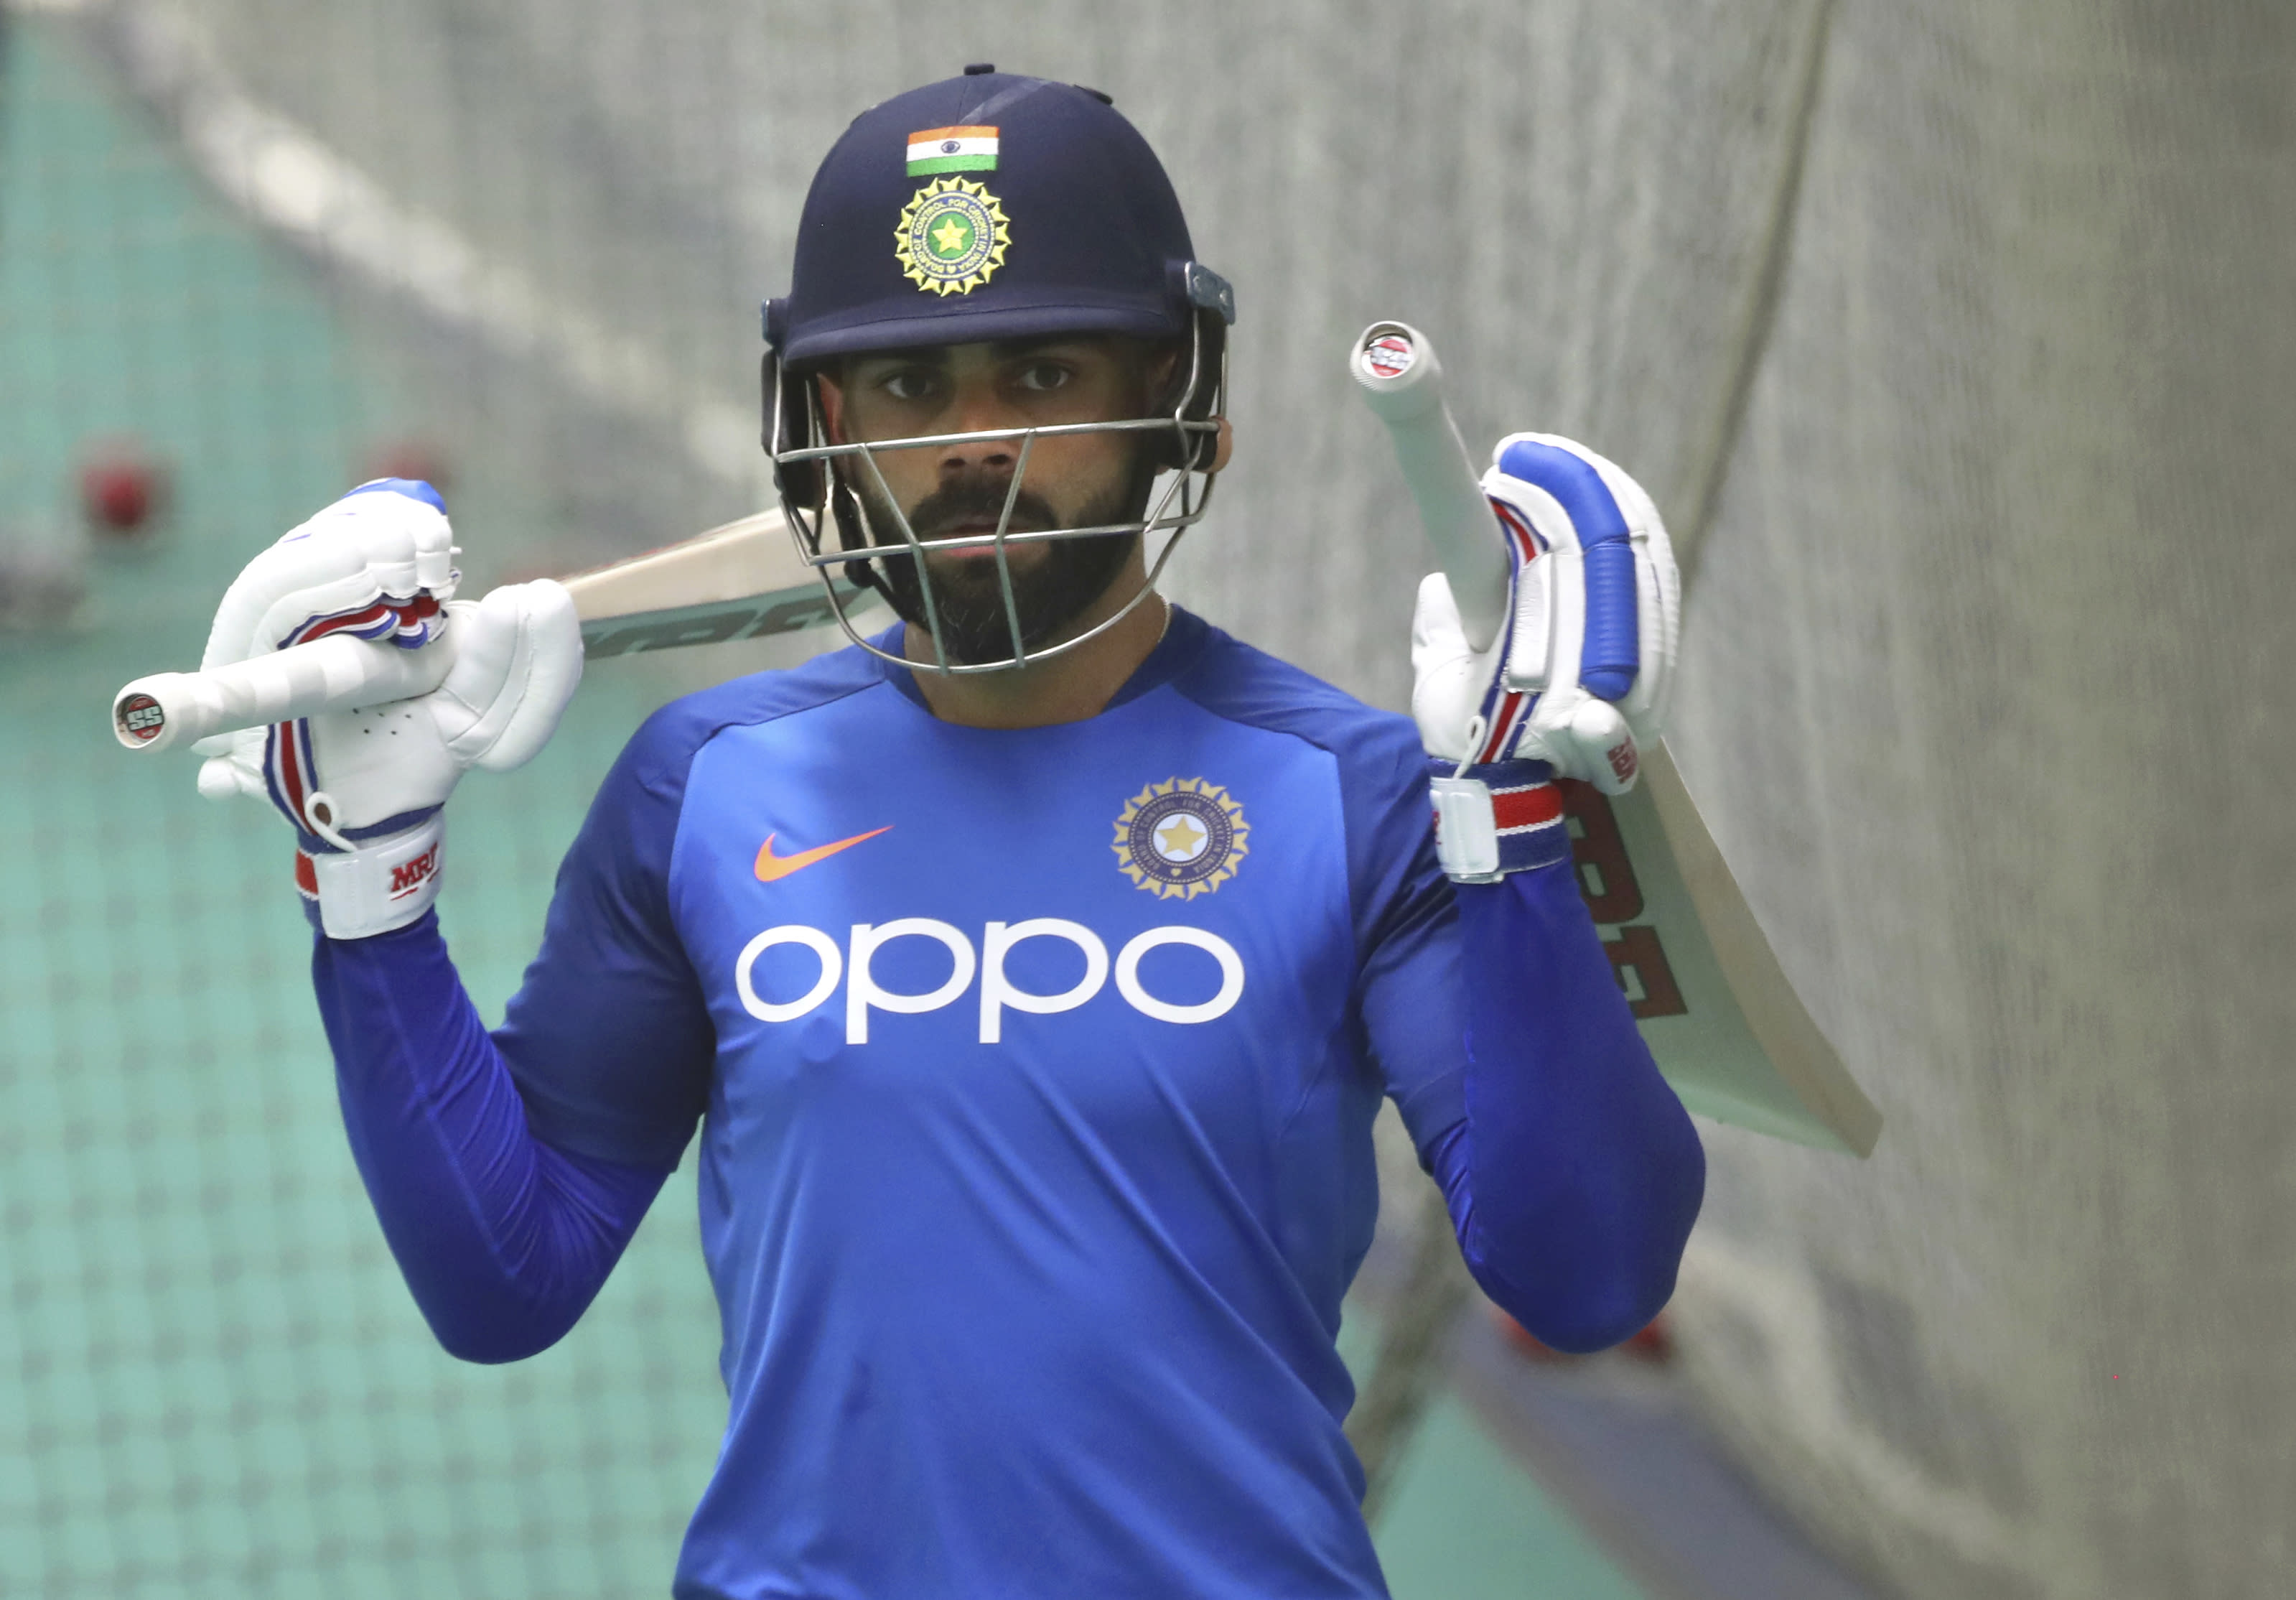 India's captain Virat Kohli leaves after batting in the nets during an indoor training session ahead of their Cricket World Cup match against West Indies at Old Trafford in Manchester, England, Tuesday, June 25, 2019. (AP Photo/Aijaz Rahi)